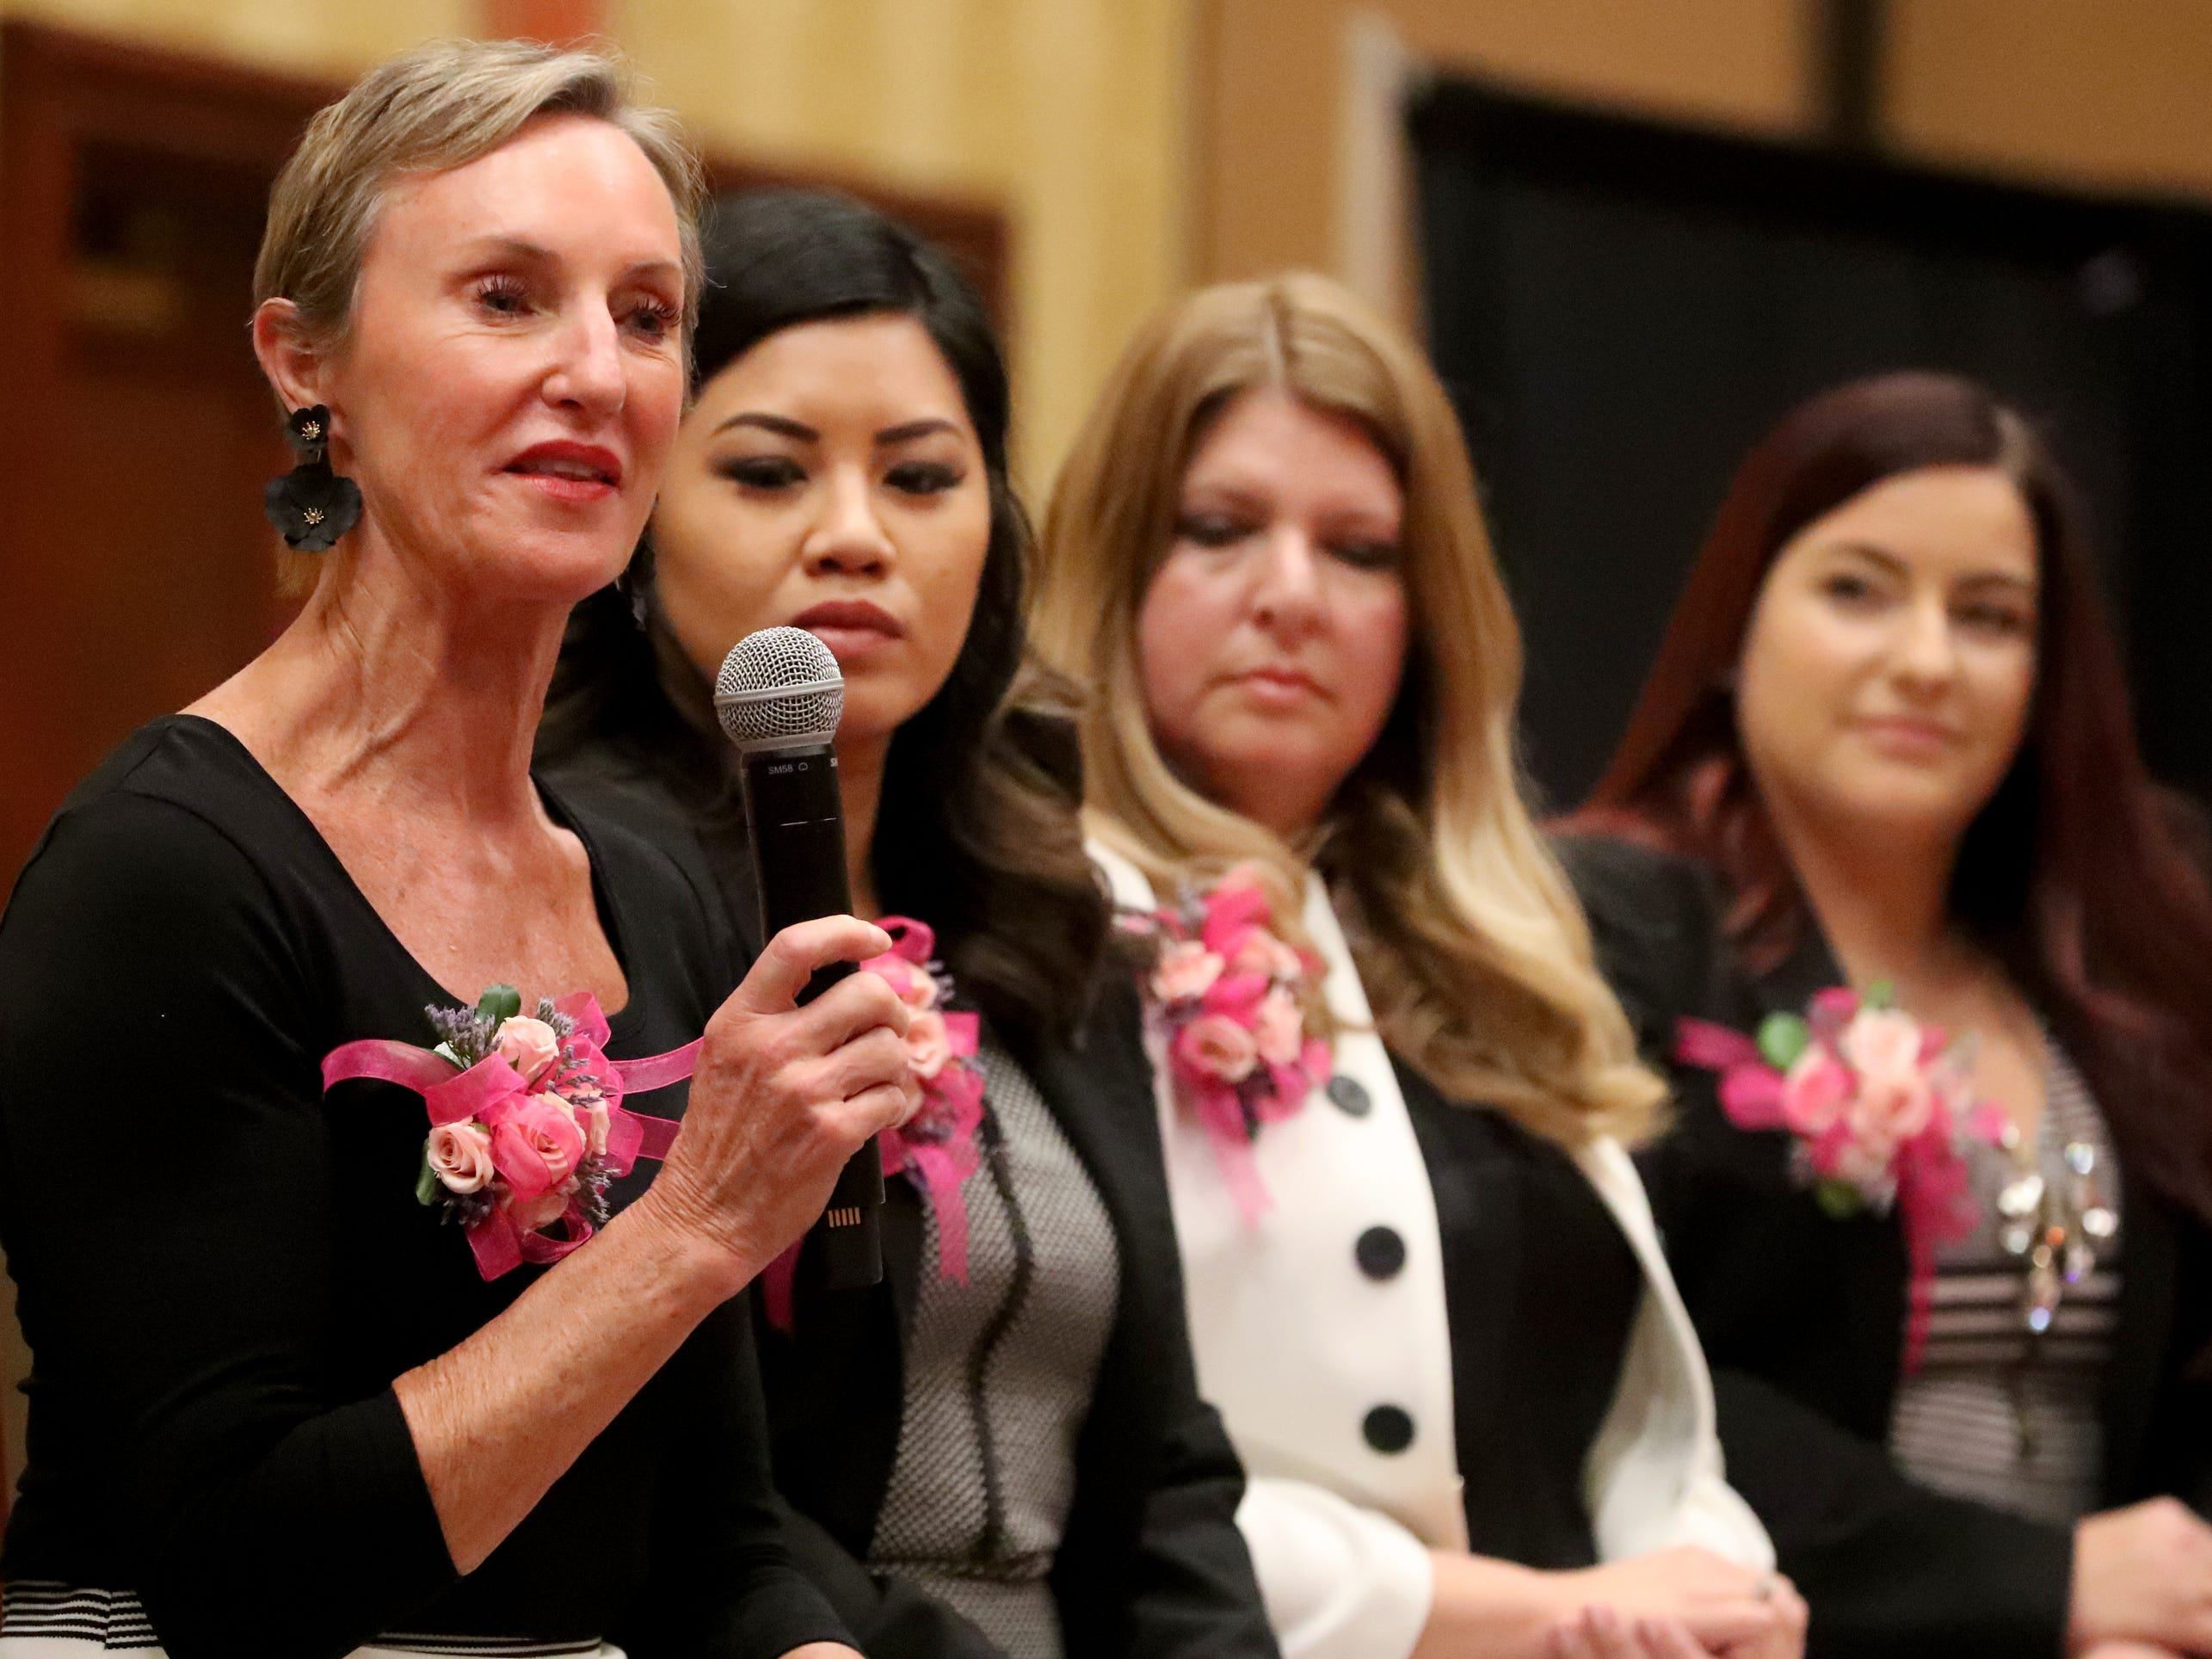 Honoree Dr. Elizabeth Laroche, M.D. at Mid-TN-GYN and Owner of Body and Face answers questions during the Murfreesboro Magazine's 2019 Women in Business Luncheon on Tuesday, March 12, 2019, at the Embassy Suites Murfreesboro.